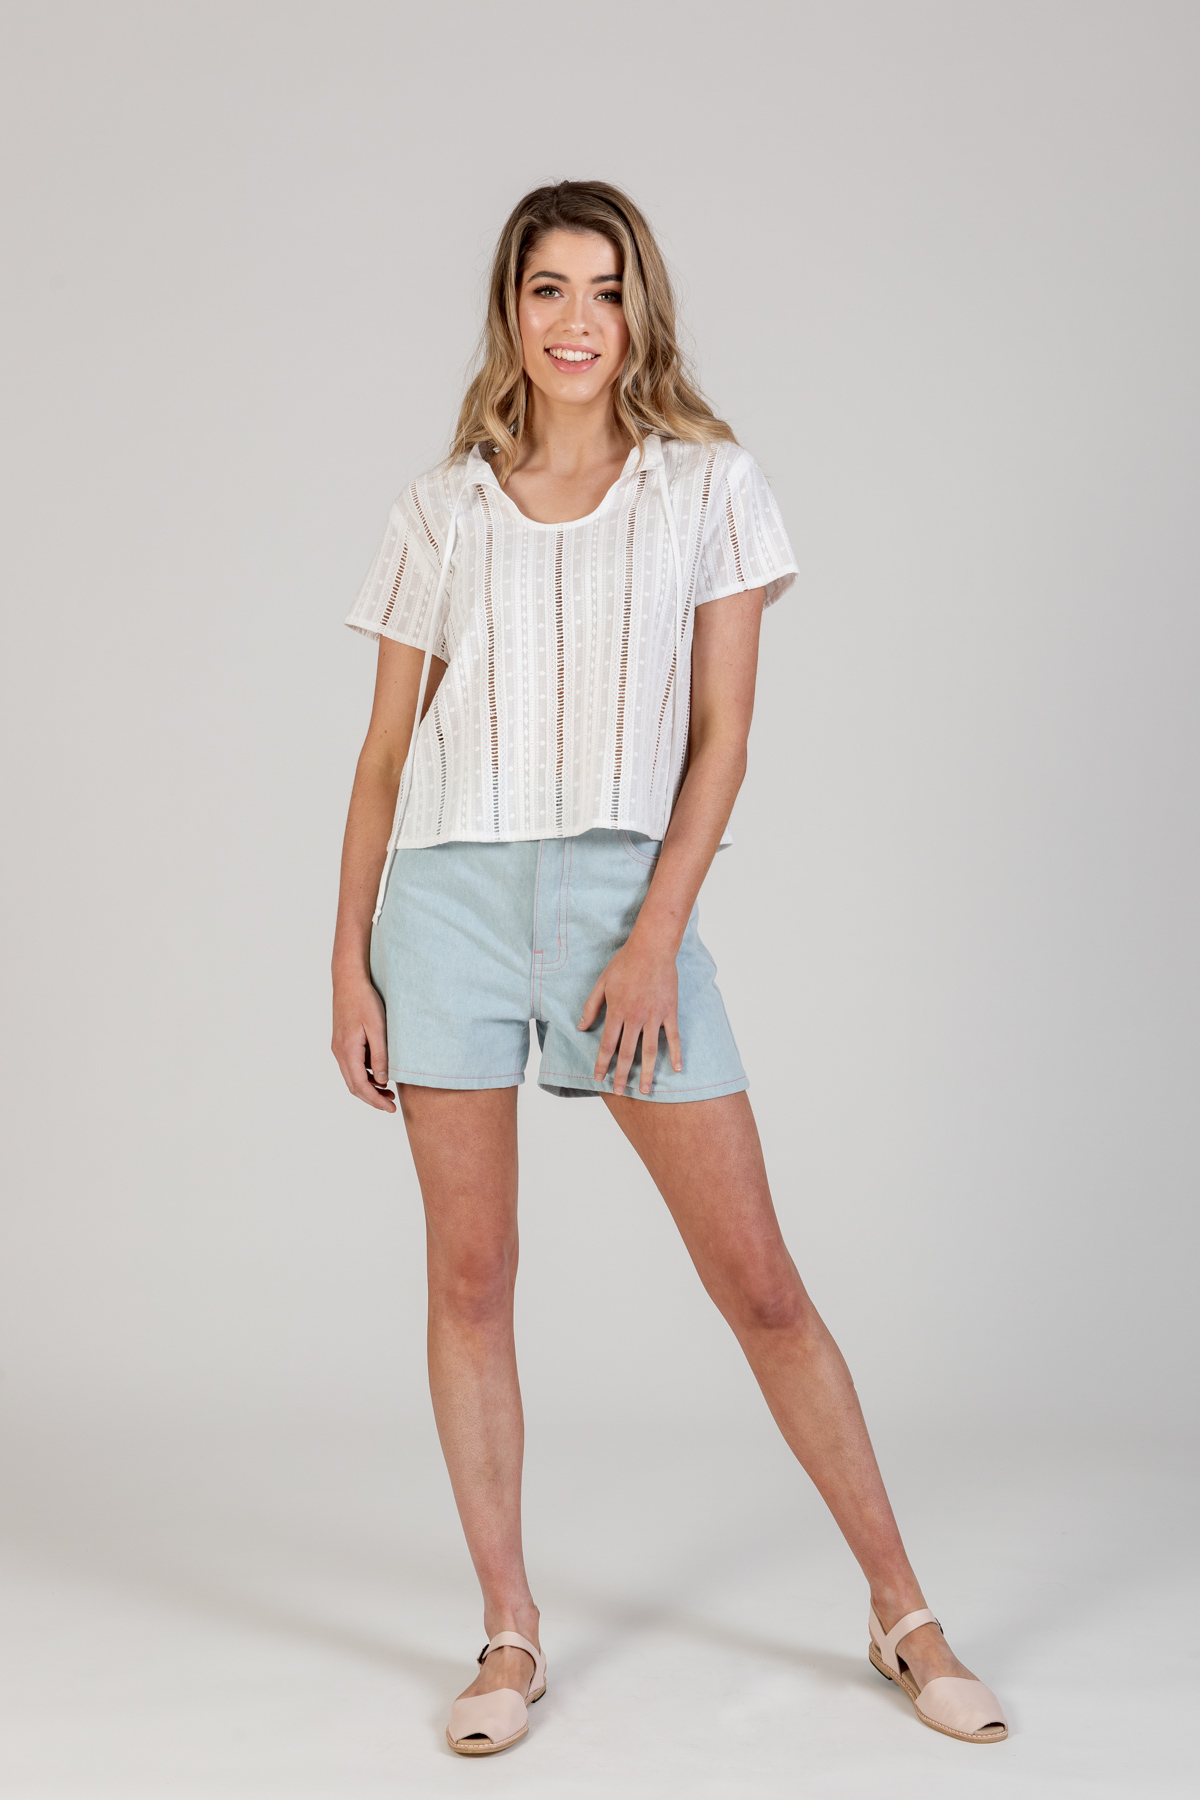 Megan Nielsen Sudley cropped blouse View B includes short sleeves, and lovely long ties. Keyhole can be worn at the back or front of this clever design.